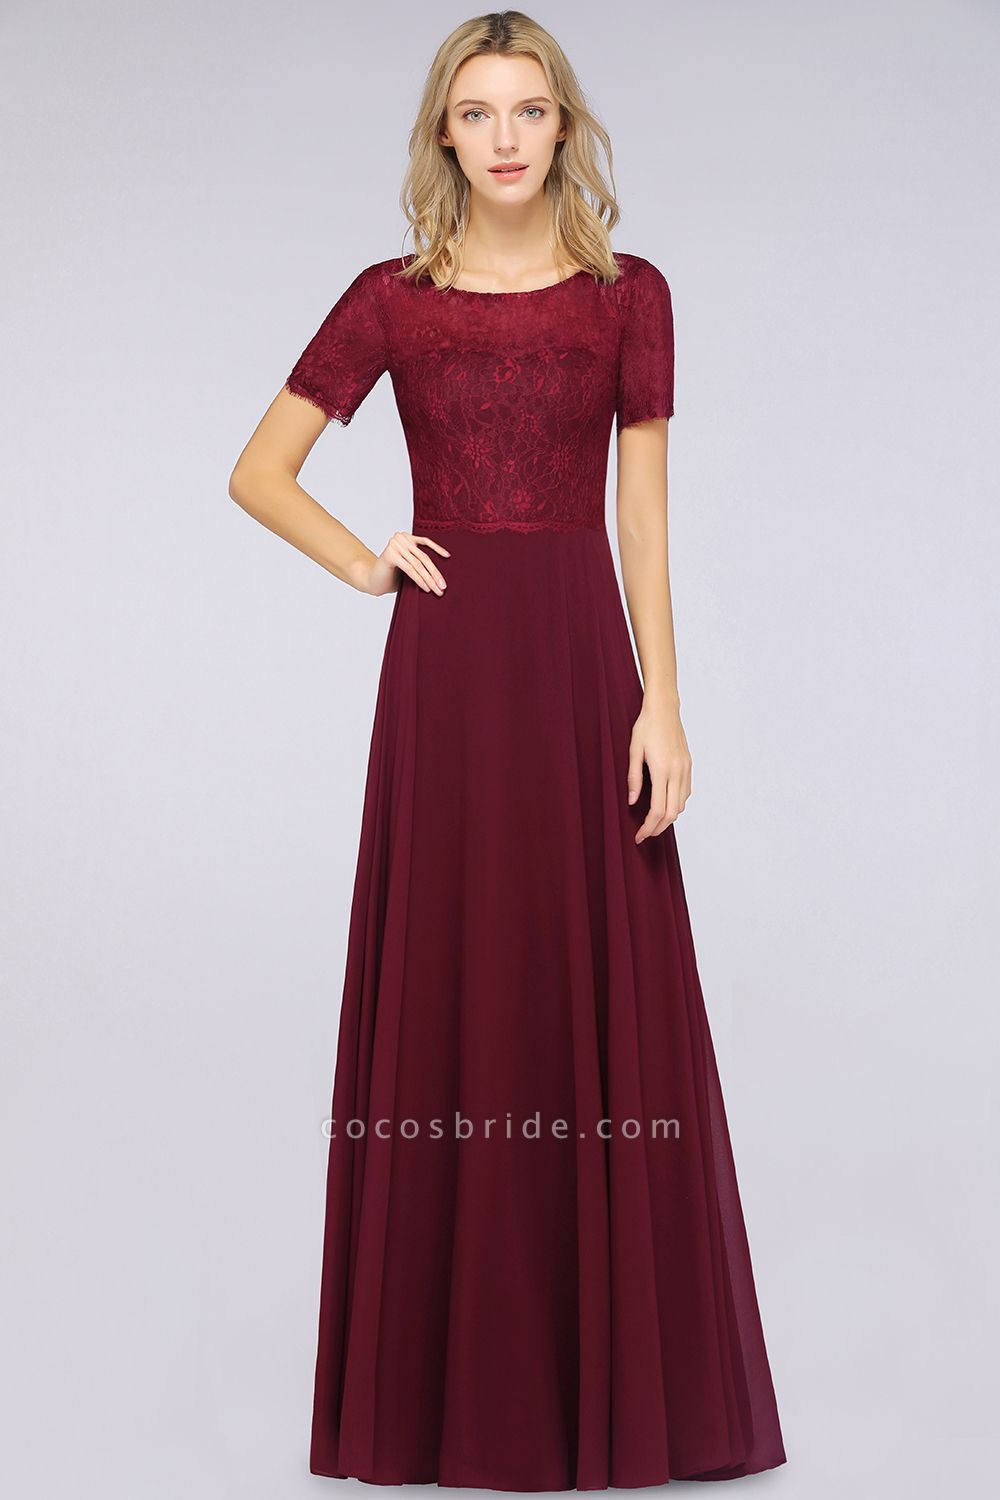 A-Line Chiffon Lace Round-Neck Short-Sleeves Floor-Length Bridesmaid Dress